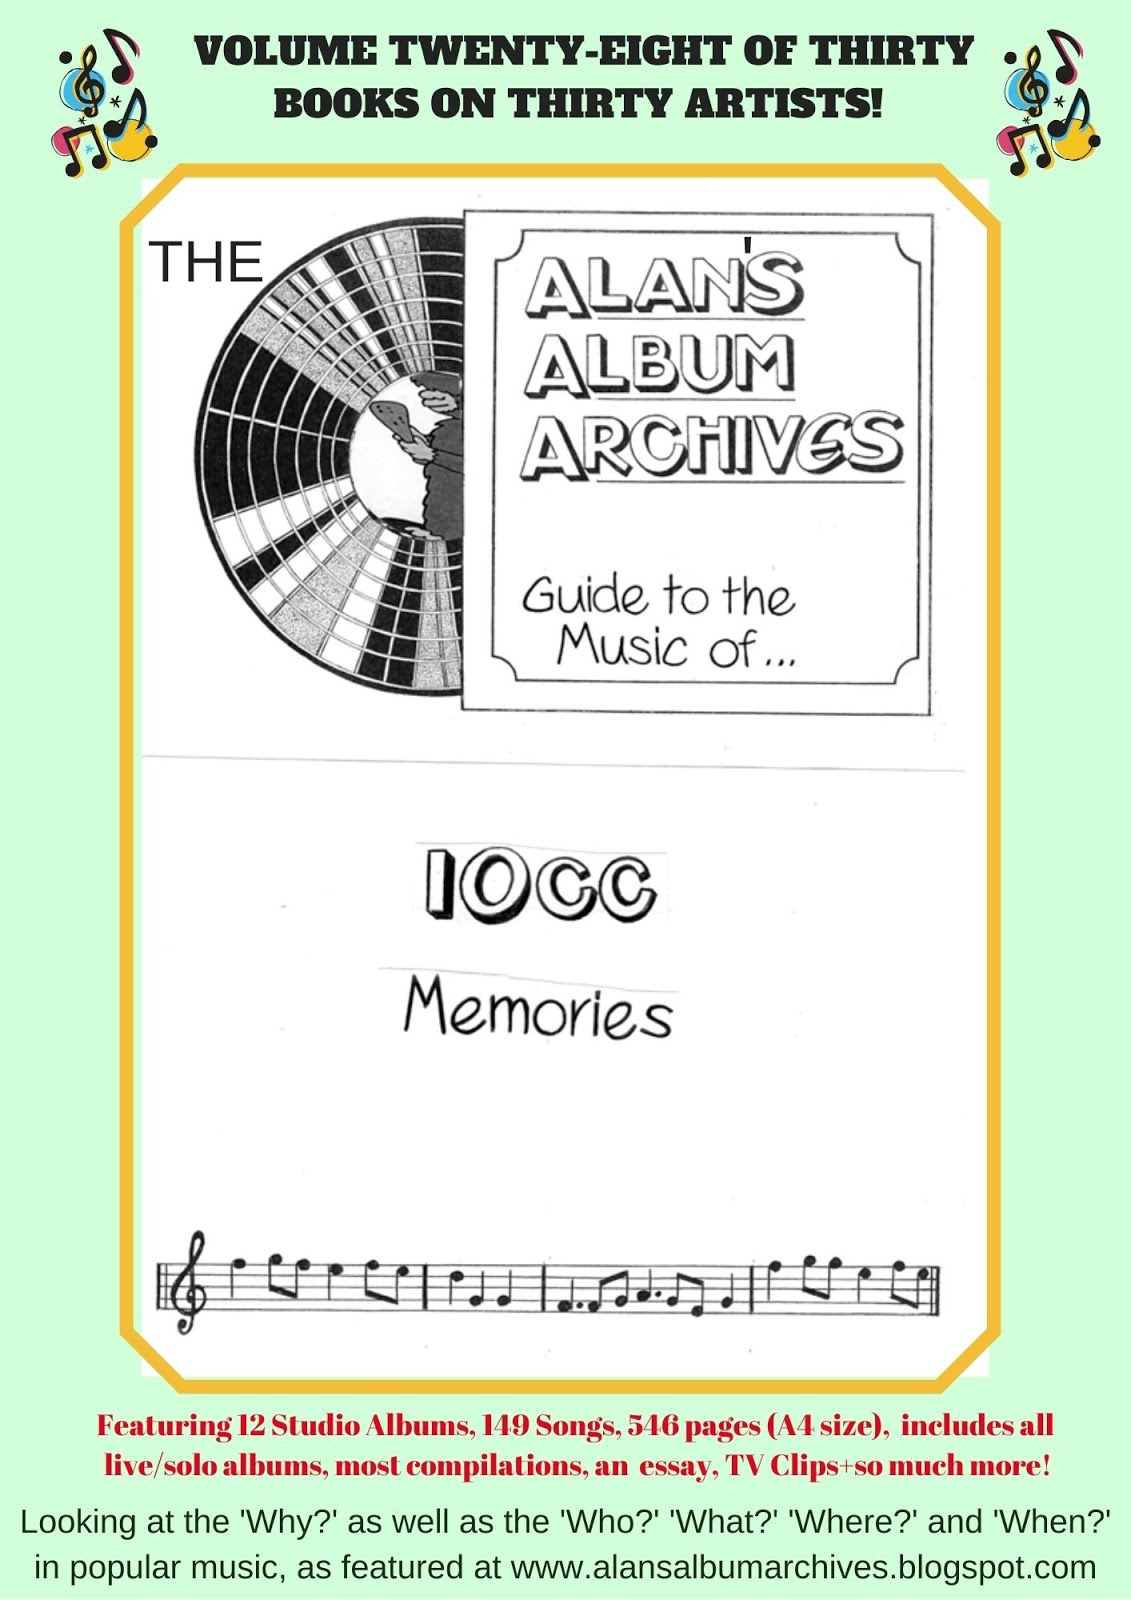 'Memories - The Alan's Album Archives Guide To The Music Of...10cc'